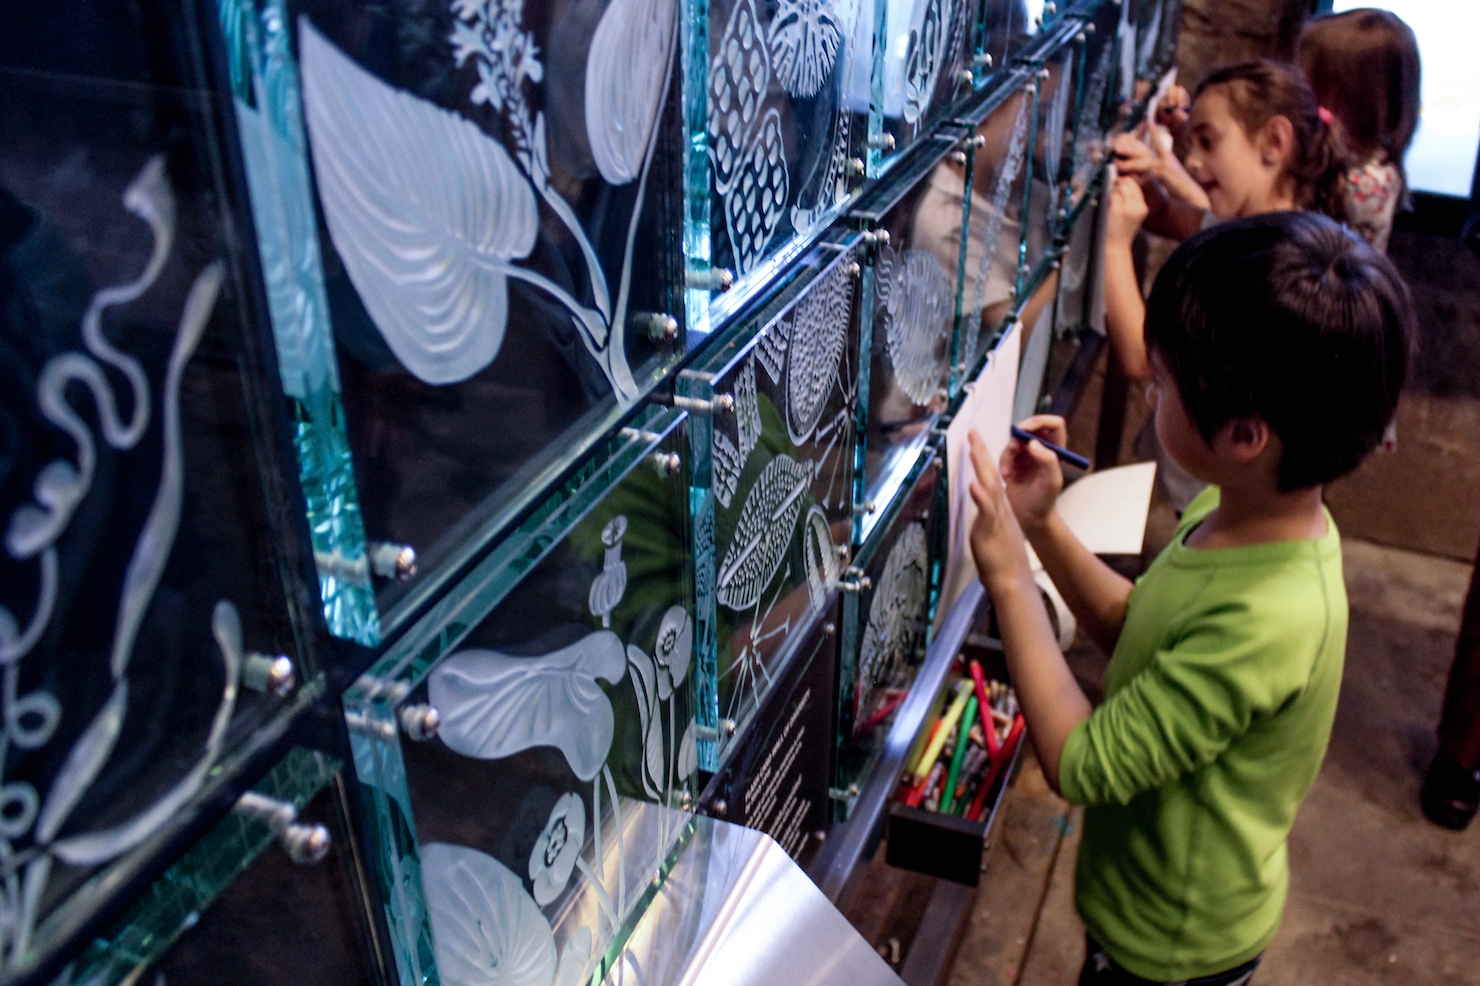 Glass tiles with sandblasted images of native animals, micro-organisms and plants provide a textural surface for students to take rubbings with paper and crayons in the Mussel Hatchery.